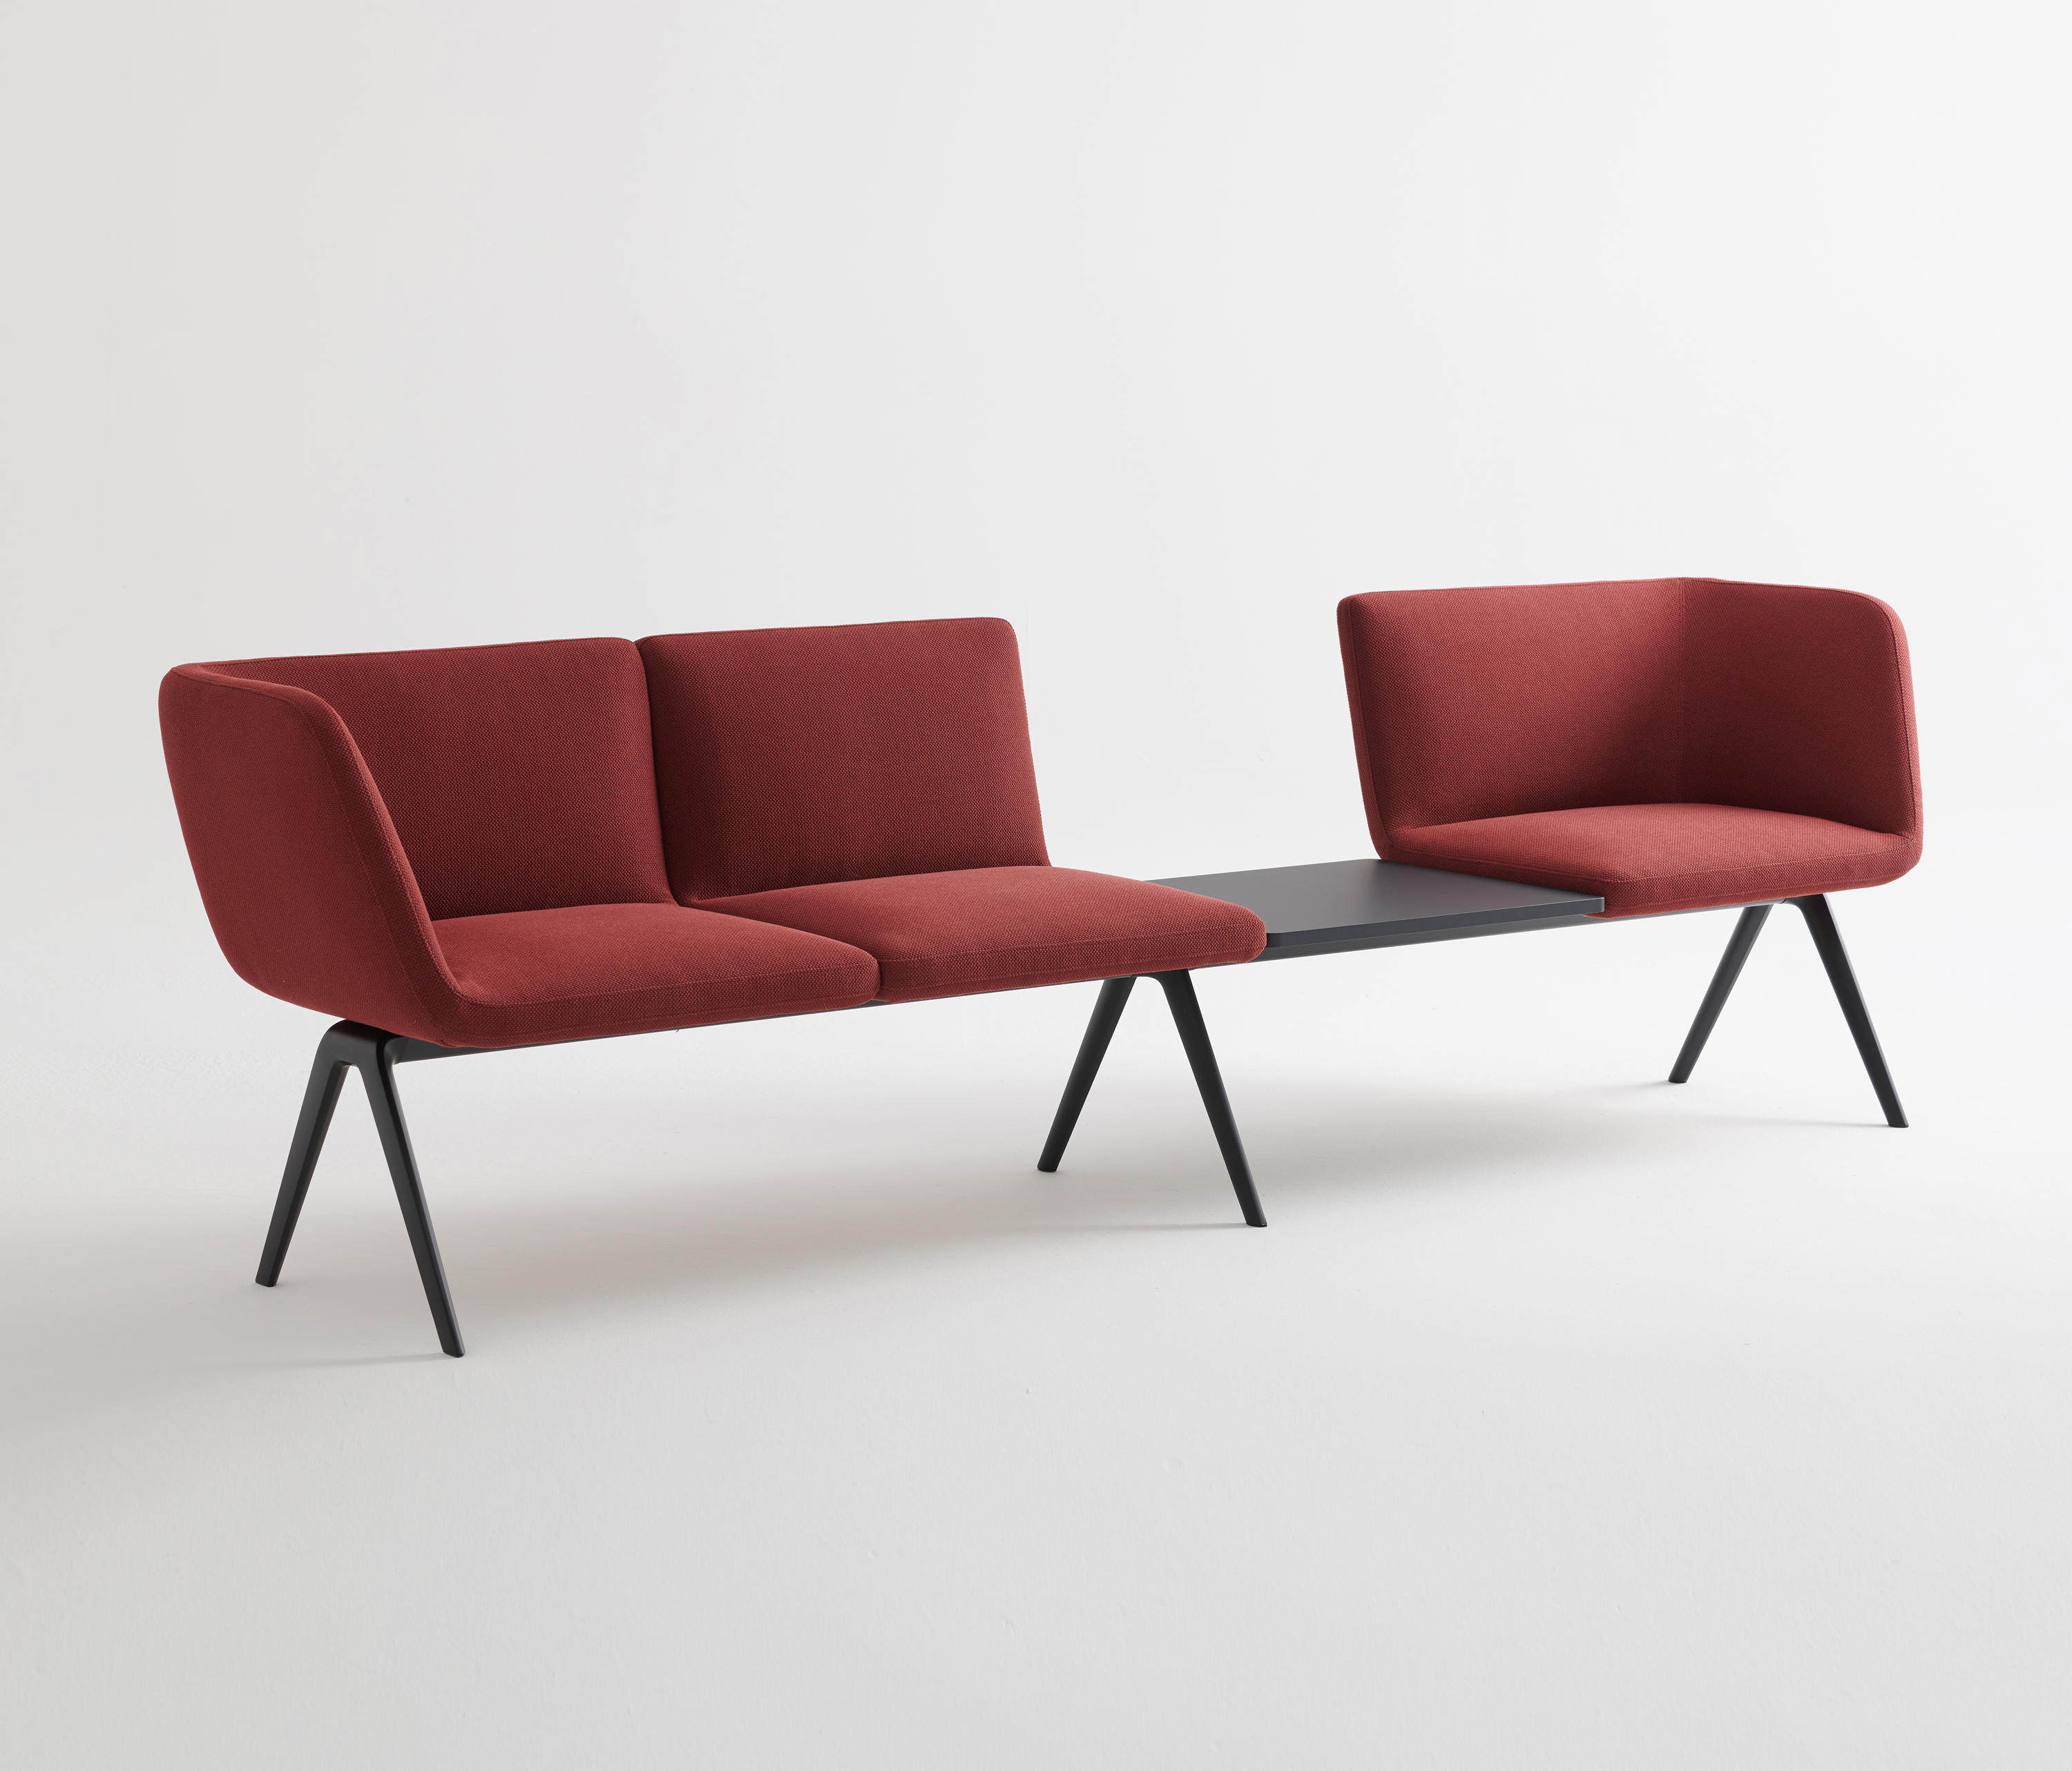 A-BENCH - Benches from Davis Furniture  Architonic